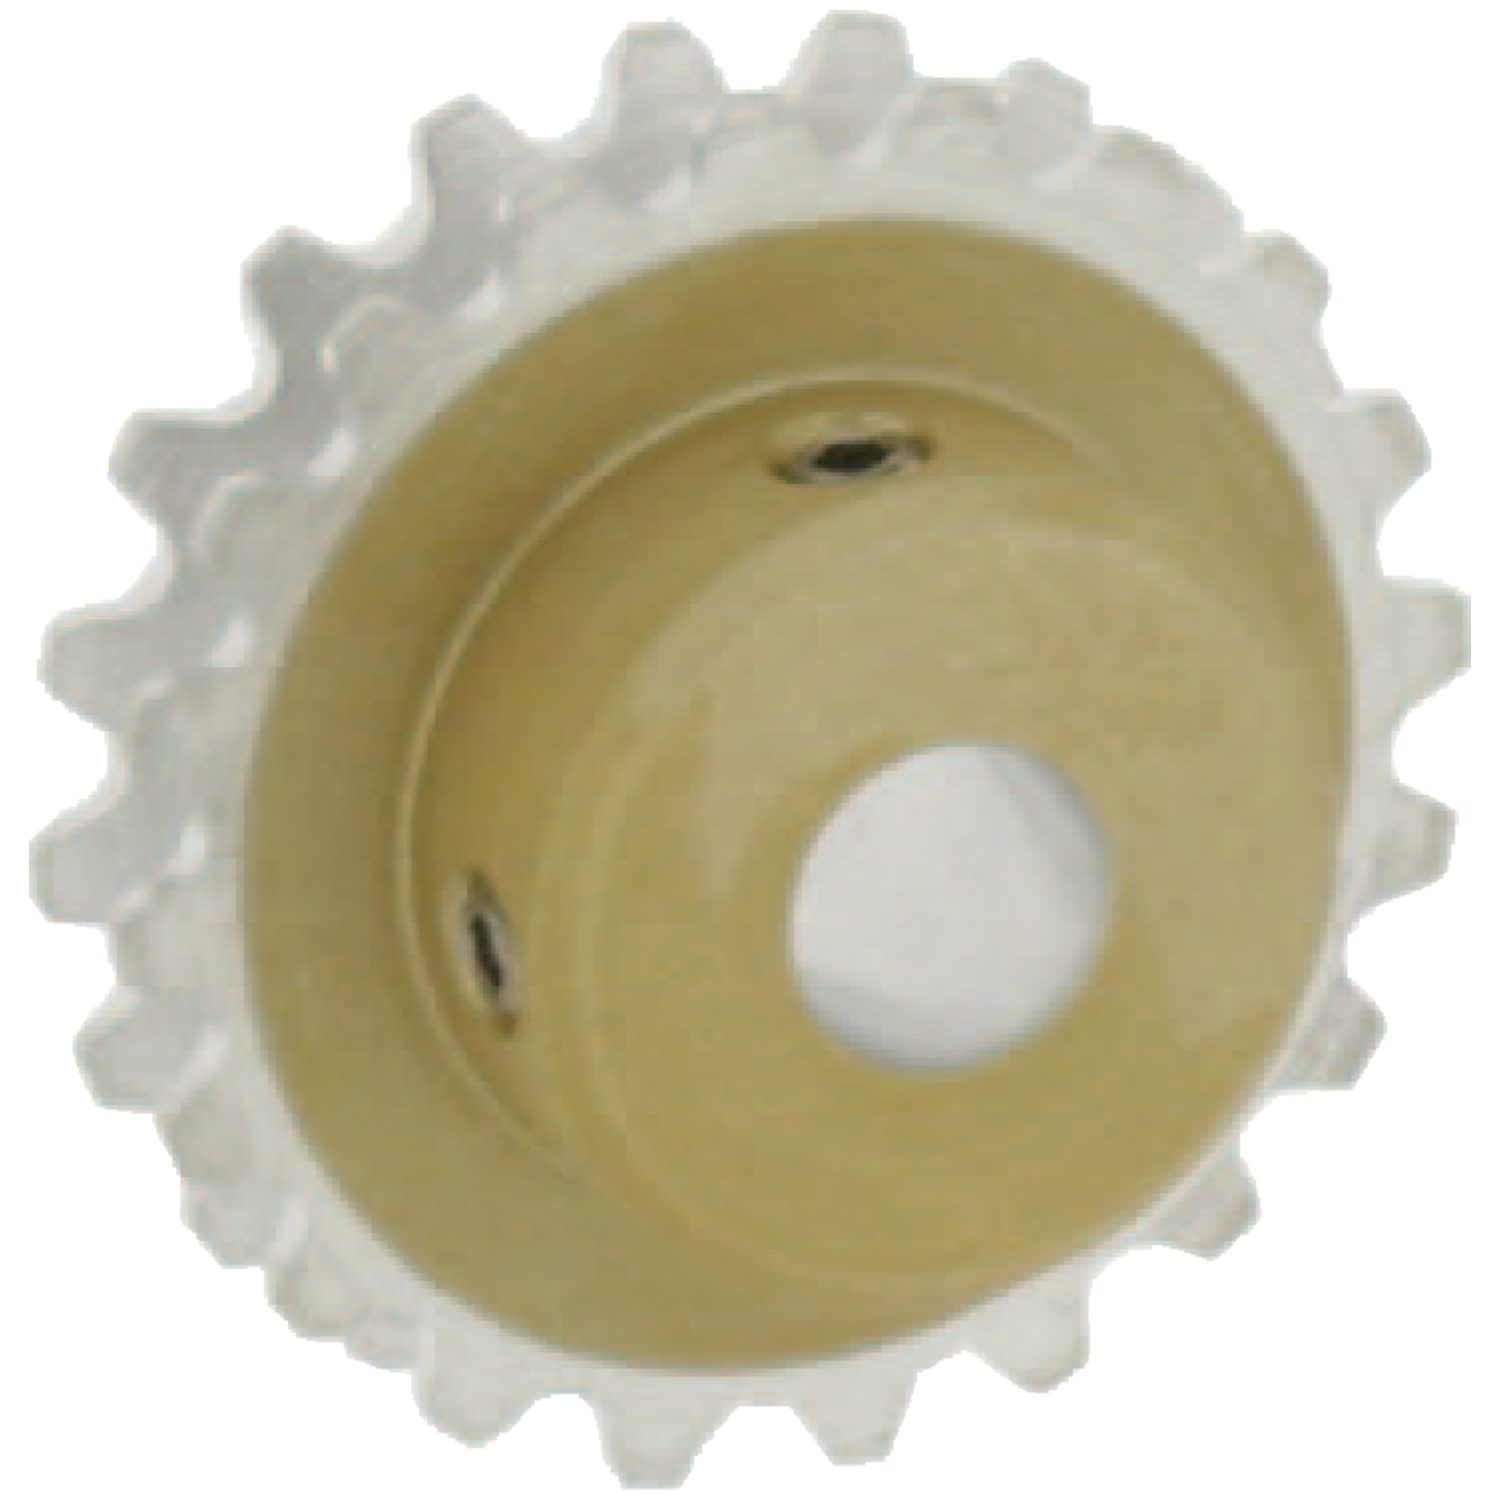 R1053 - Idler 3-D Pulleys - aluminium, pin hub